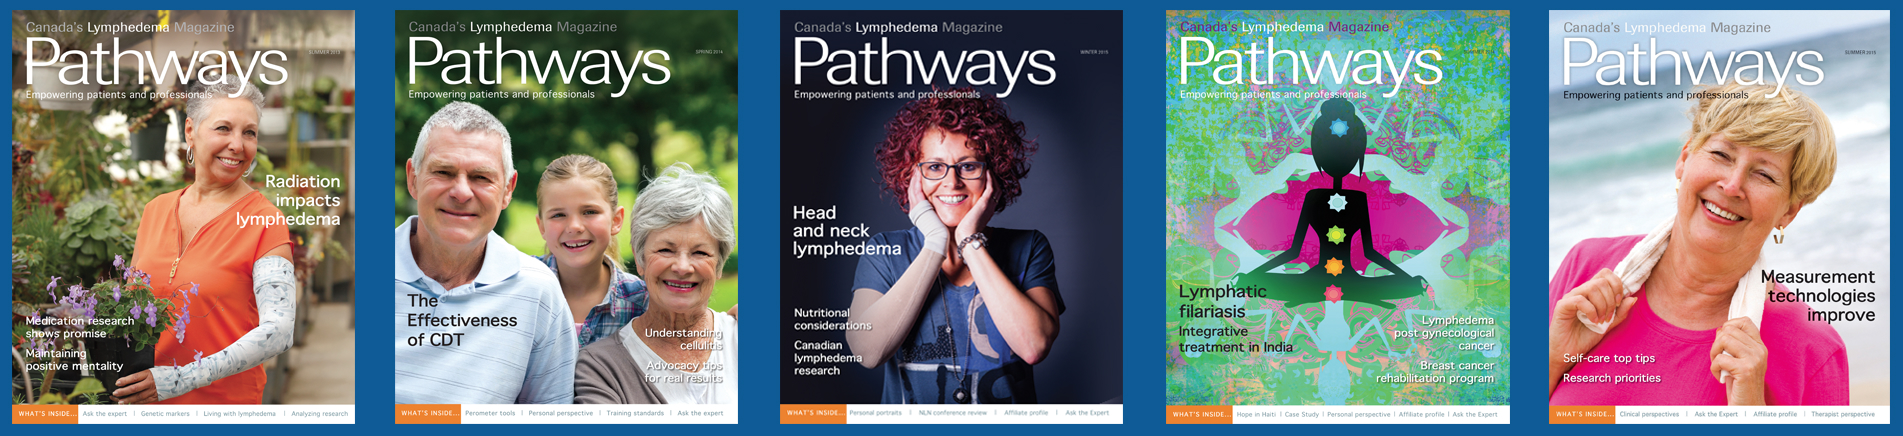 Pathways Magazine